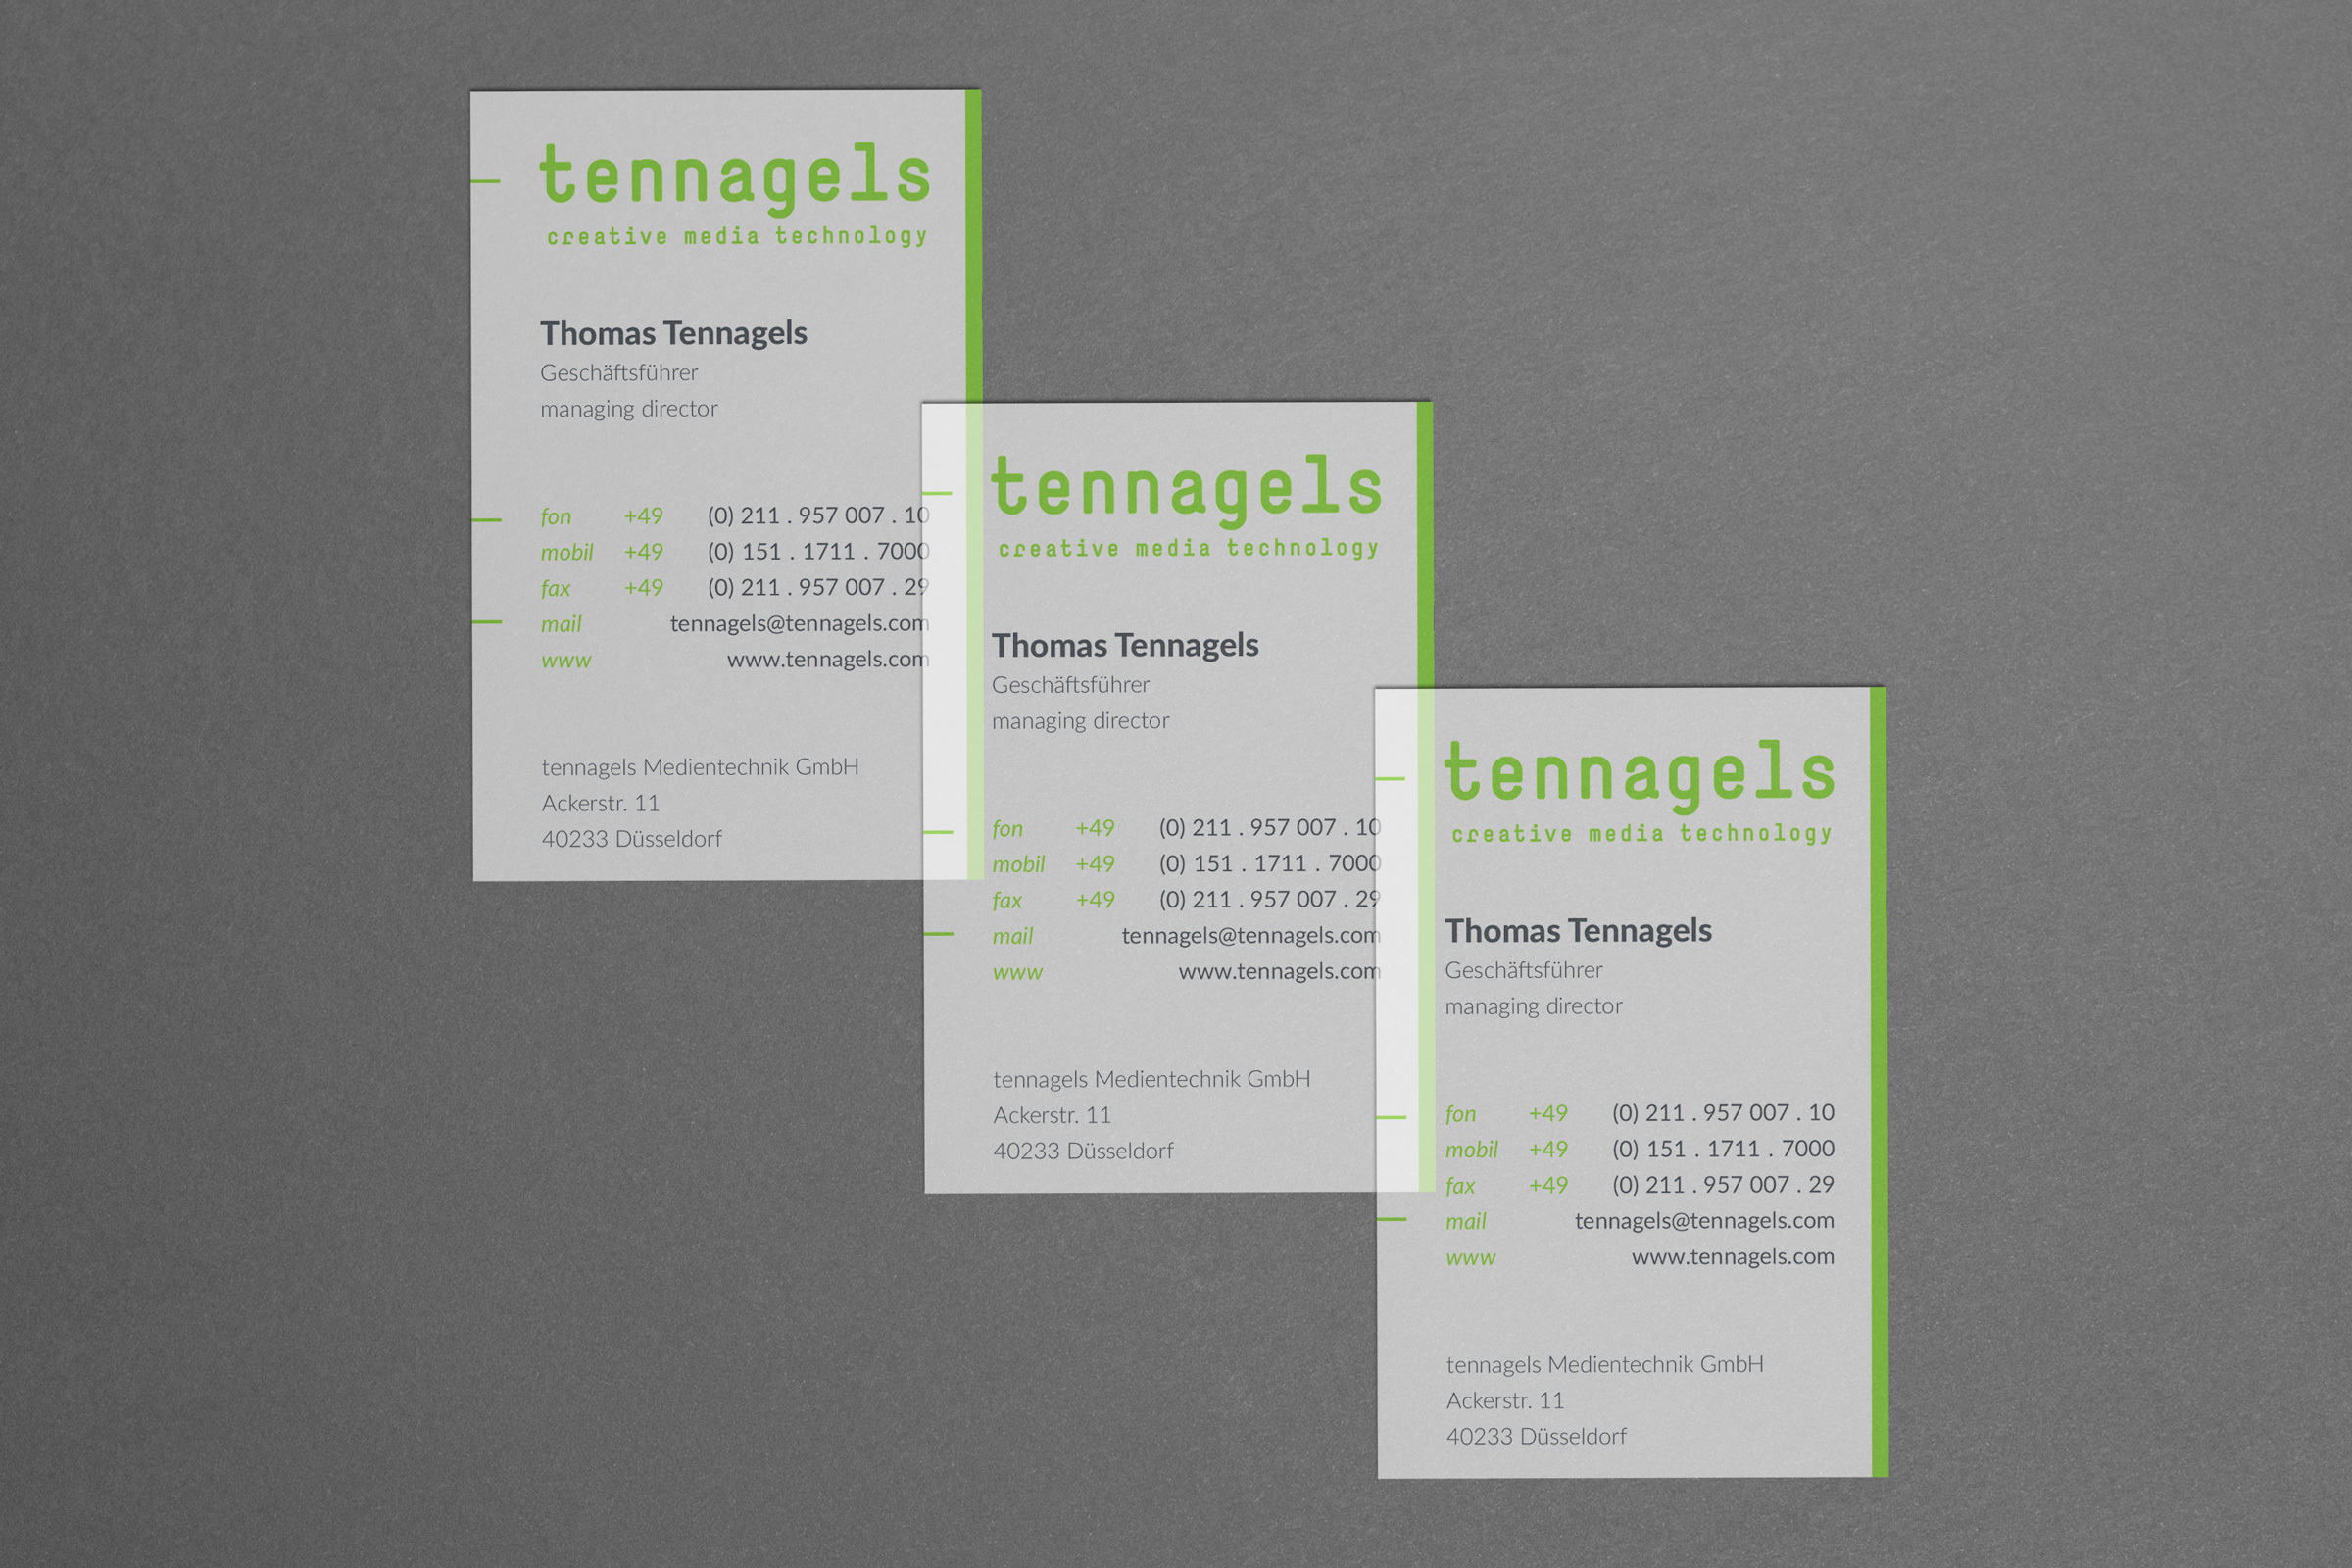 tennagels-featured05